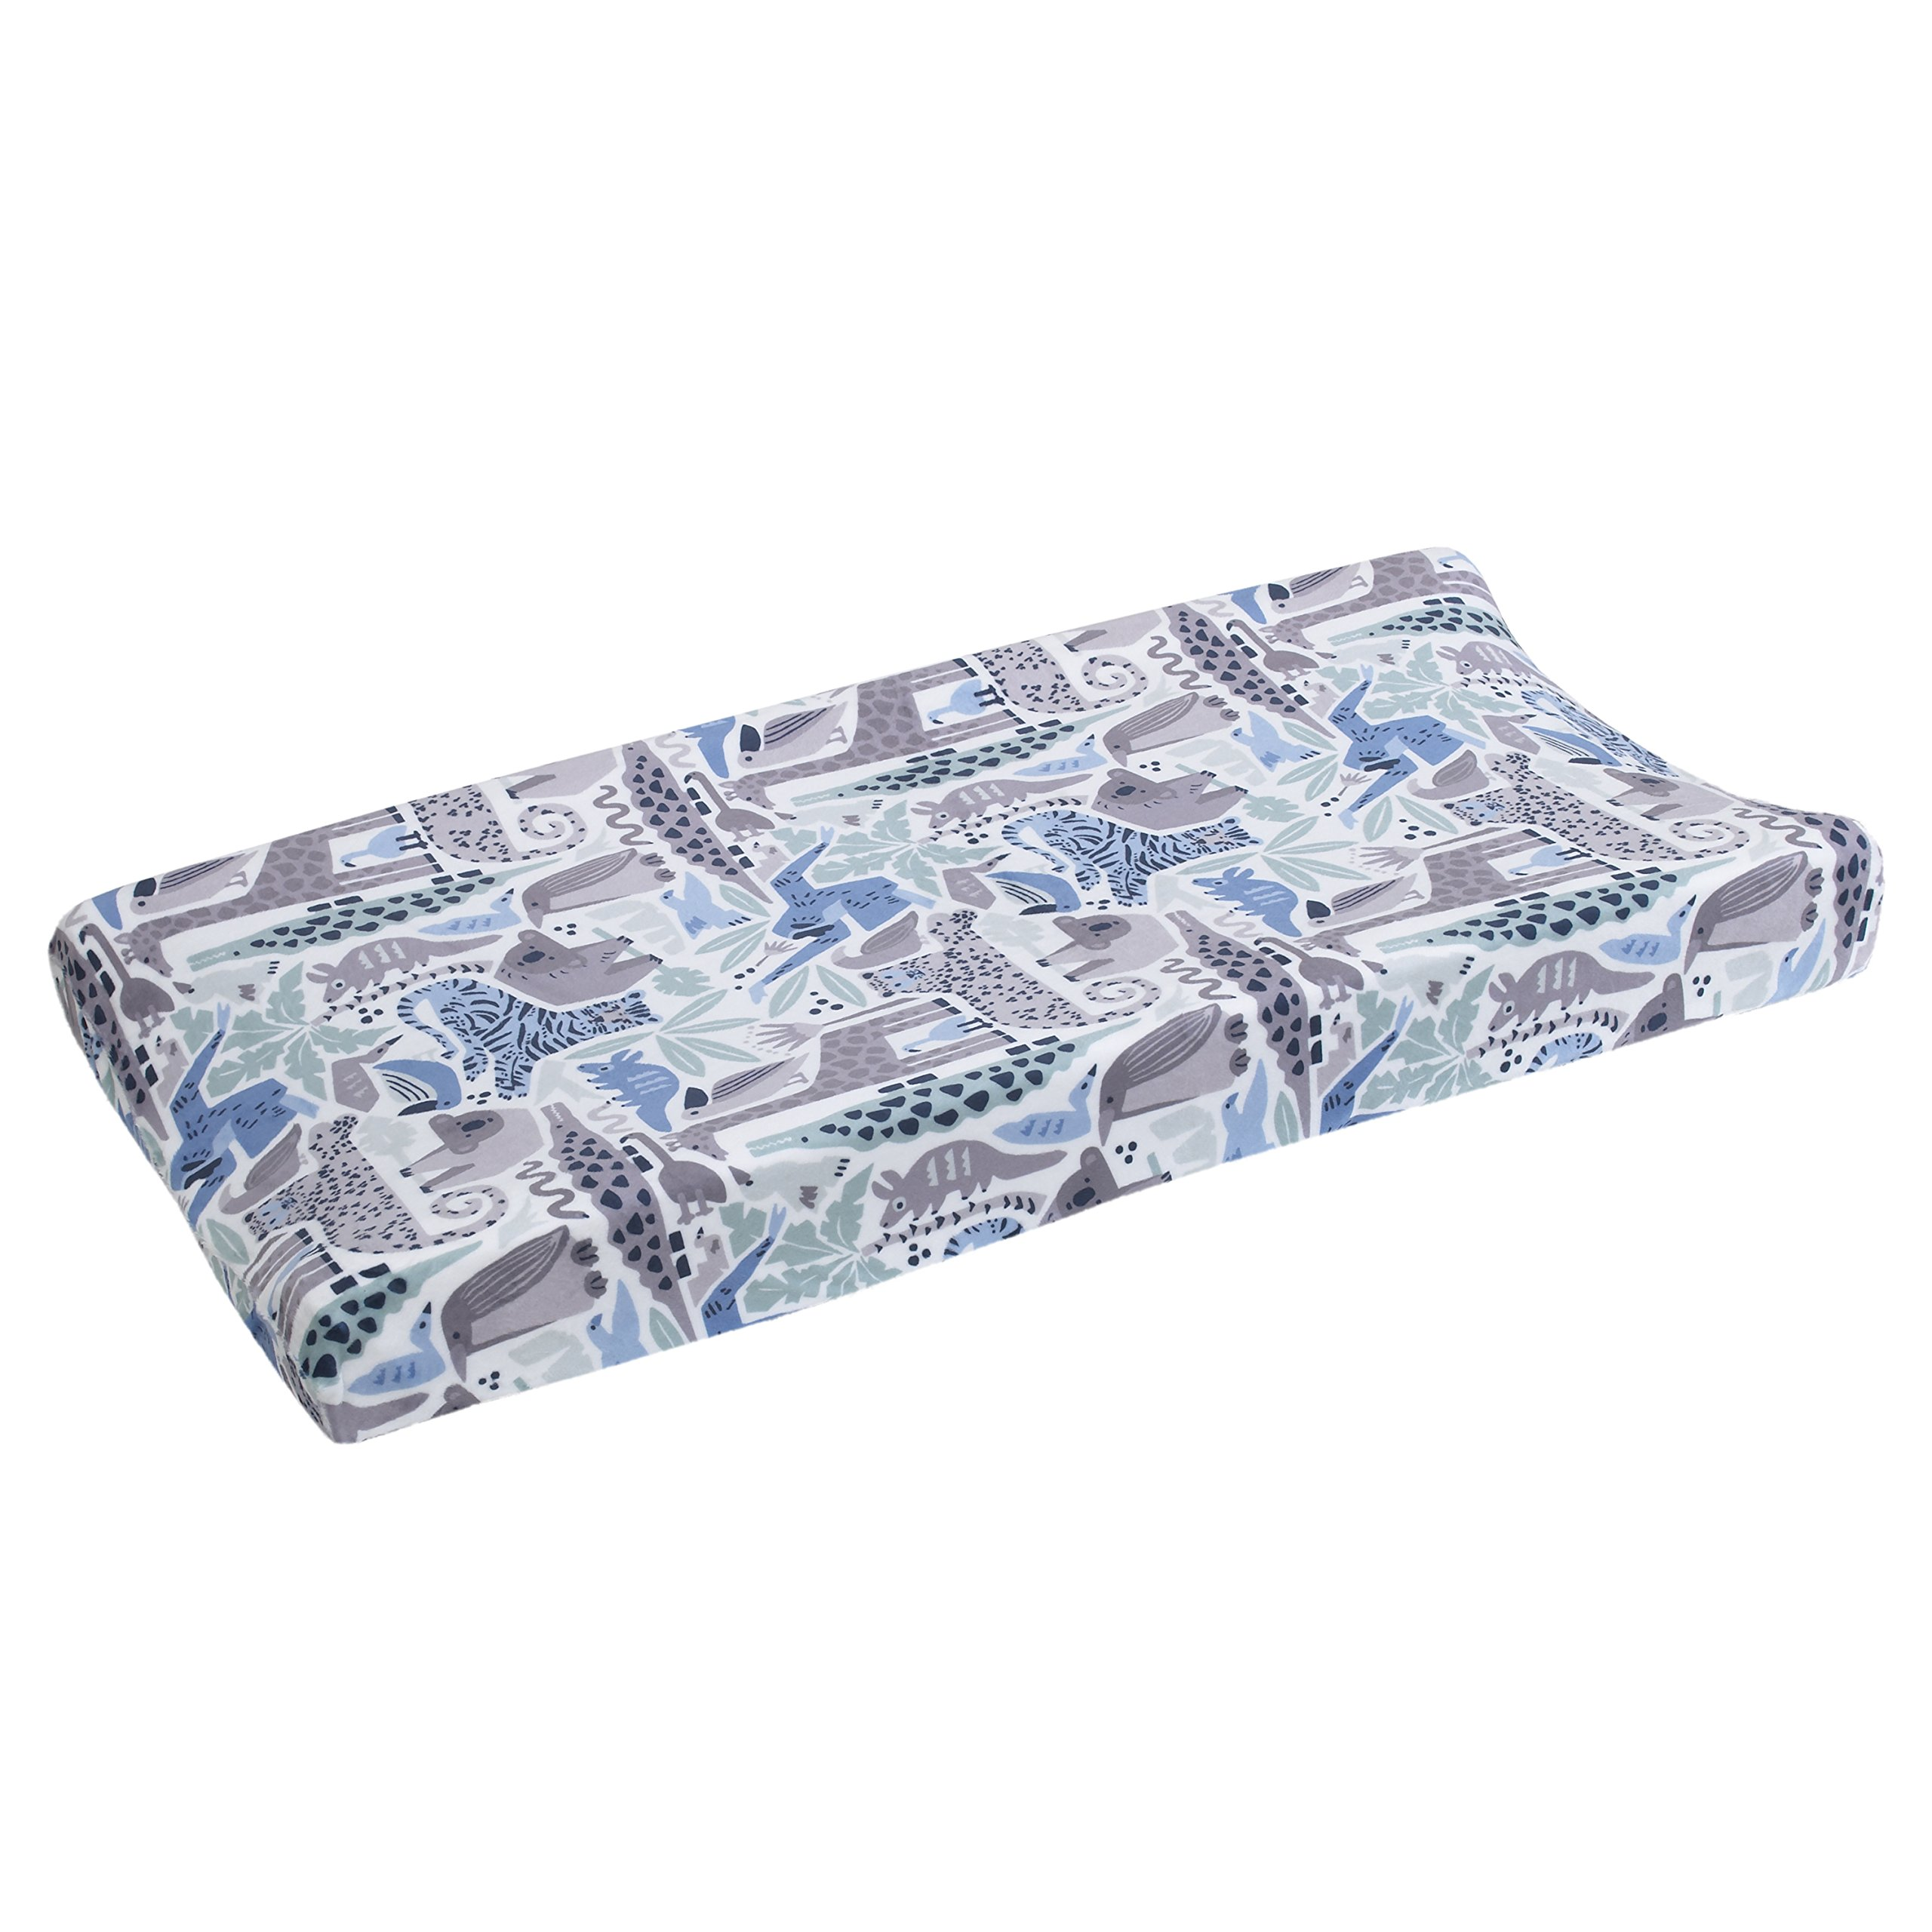 Dwell Studio Safari Skies Animal/Jungle Super Soft Changing Pad Cover, Blue/Green/White